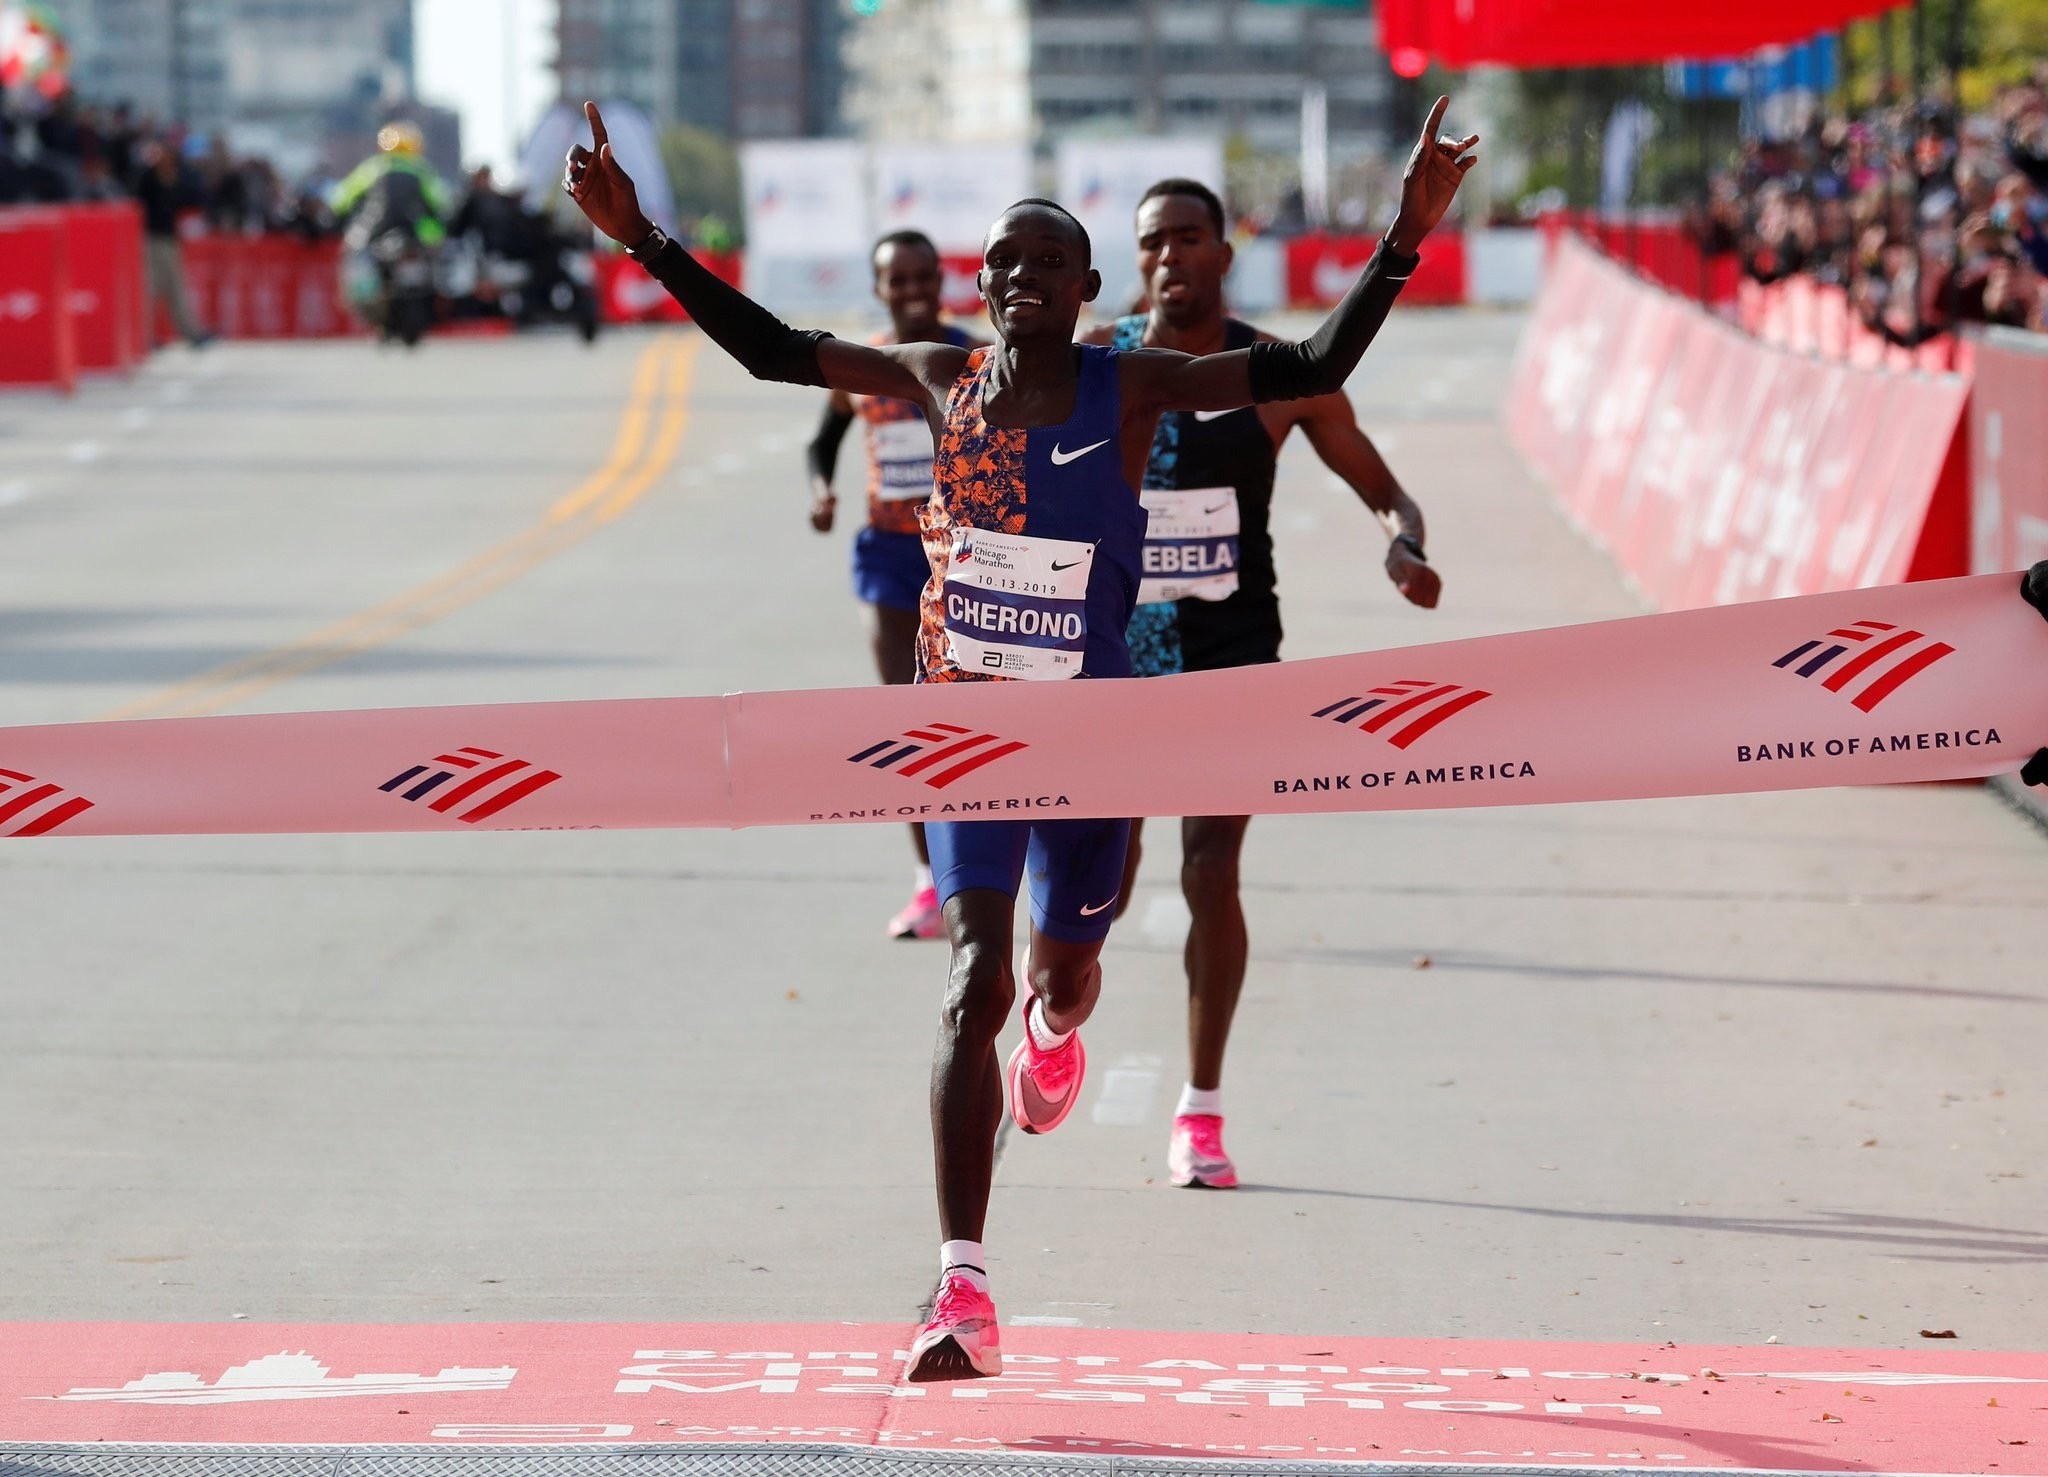 Lawrence Cherono again made a last minute sprint to win the Chicago Marathon like he did in Boston earlier in the year